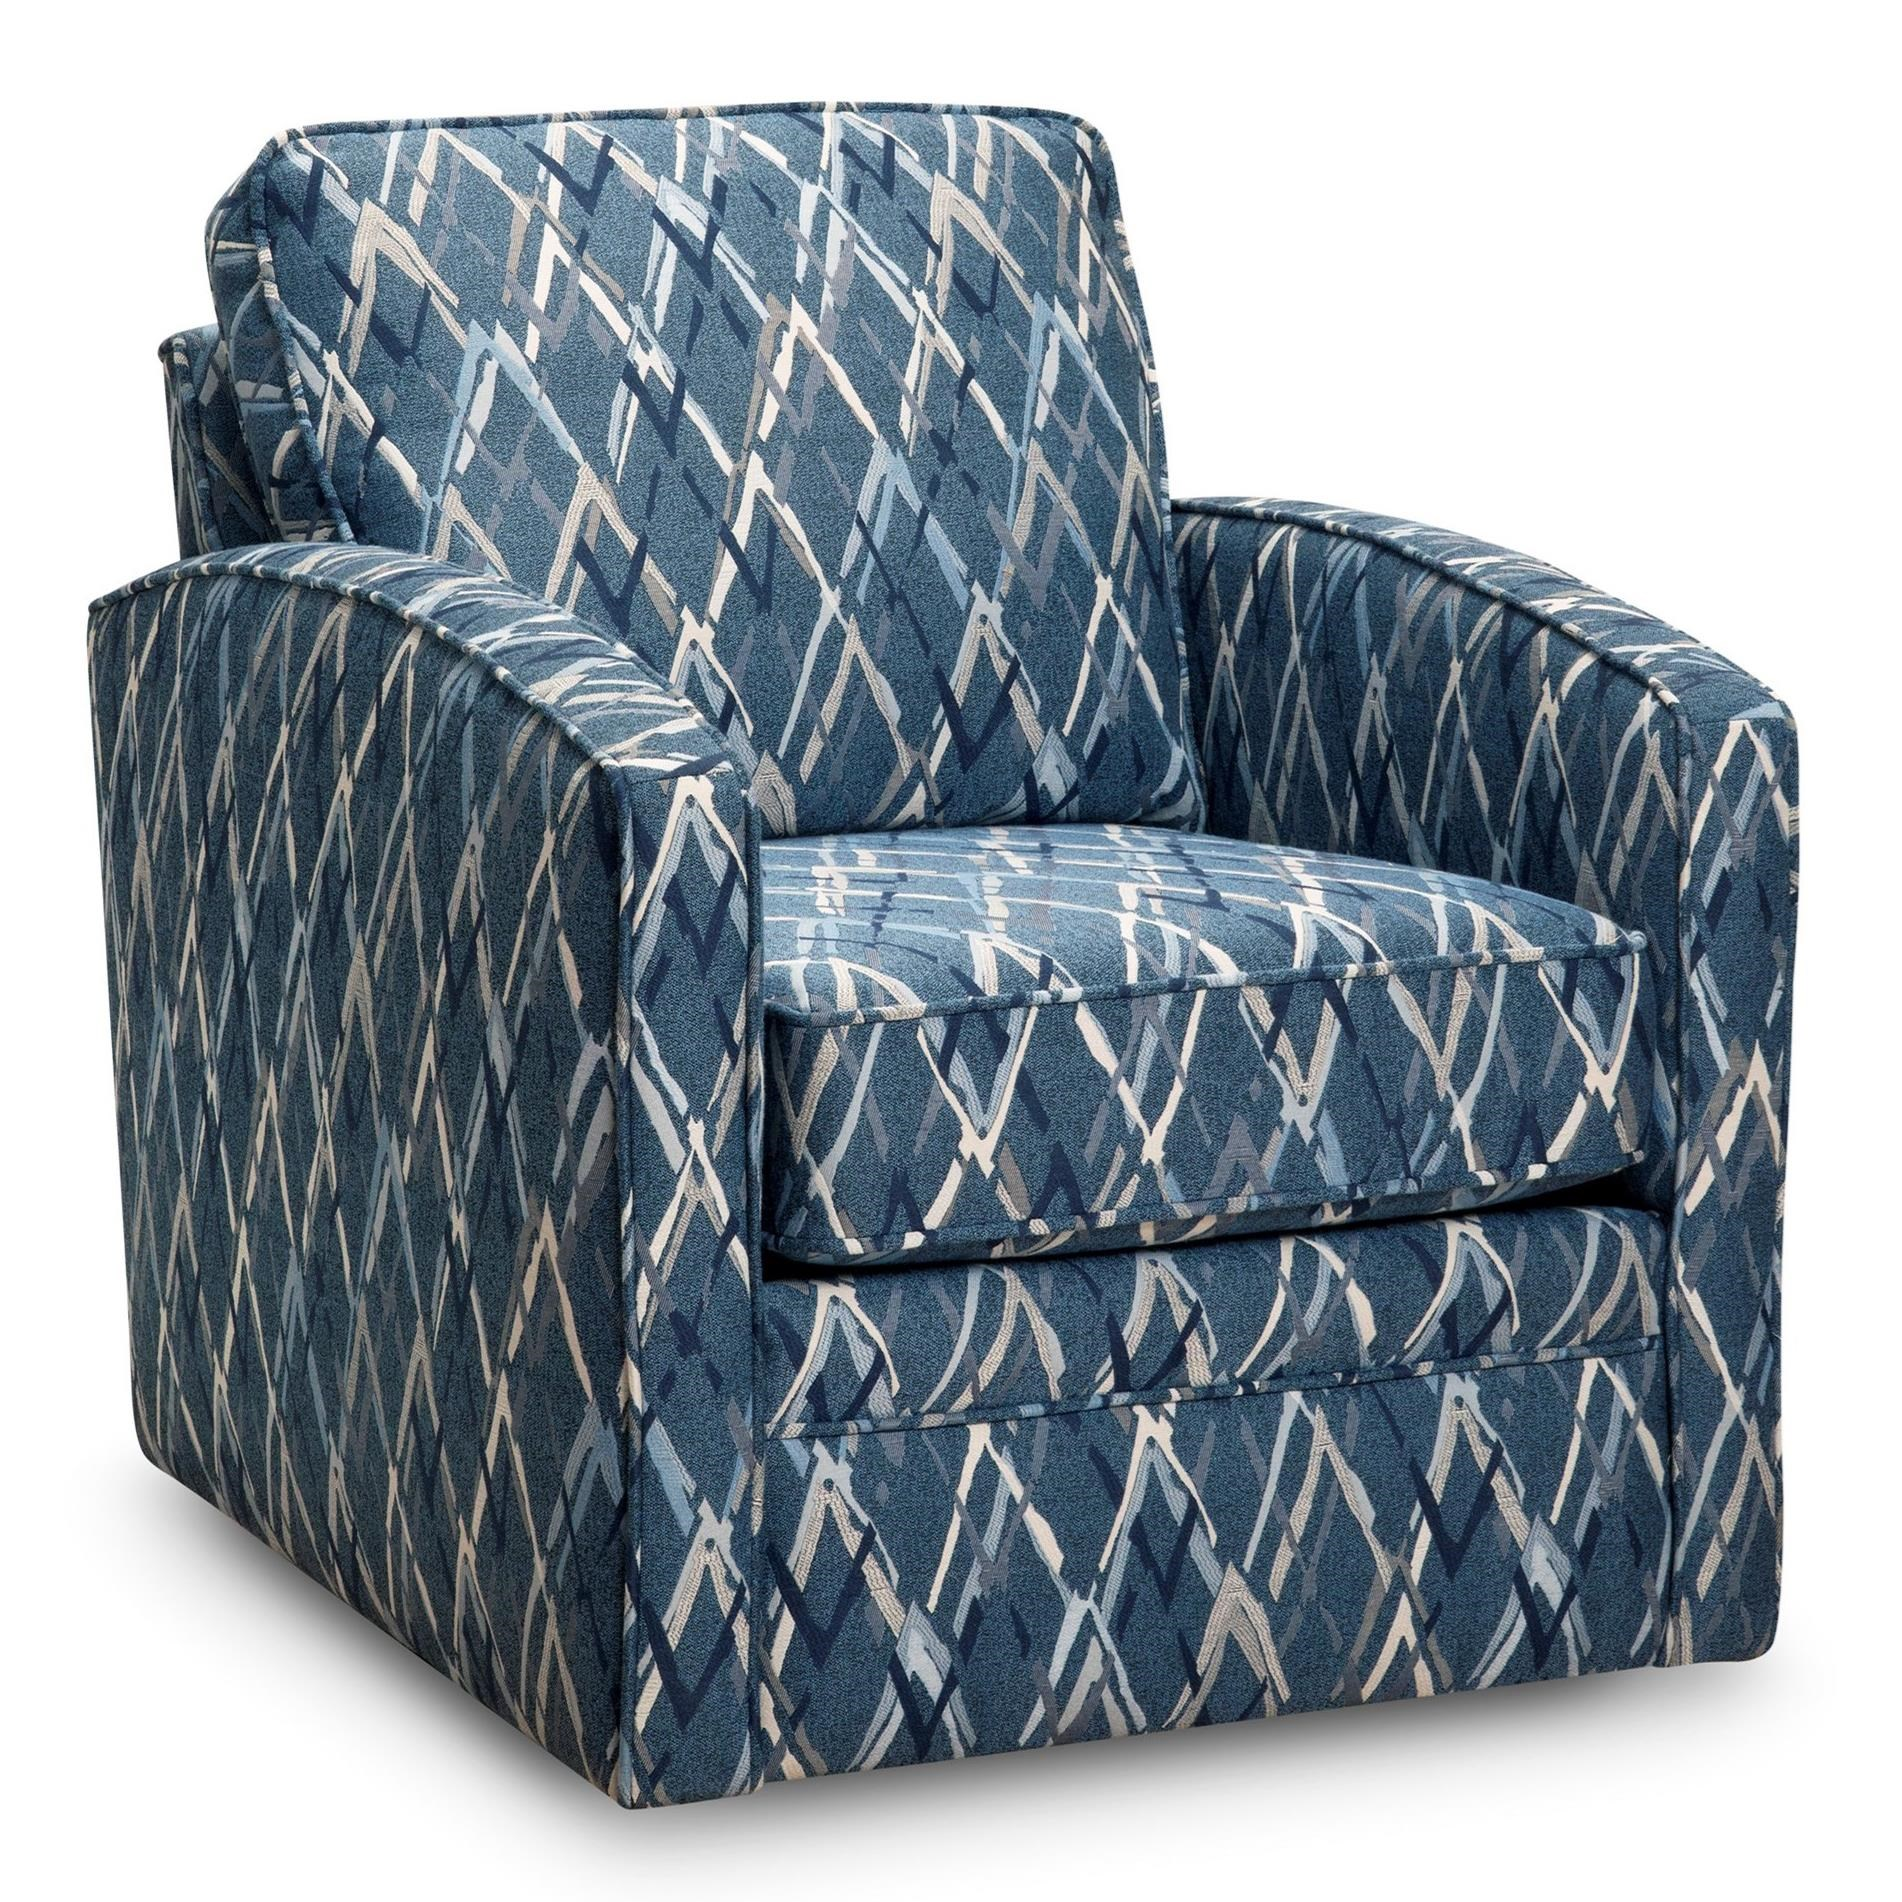 37 Swivel Chair by Superstyle at Jordan's Home Furnishings